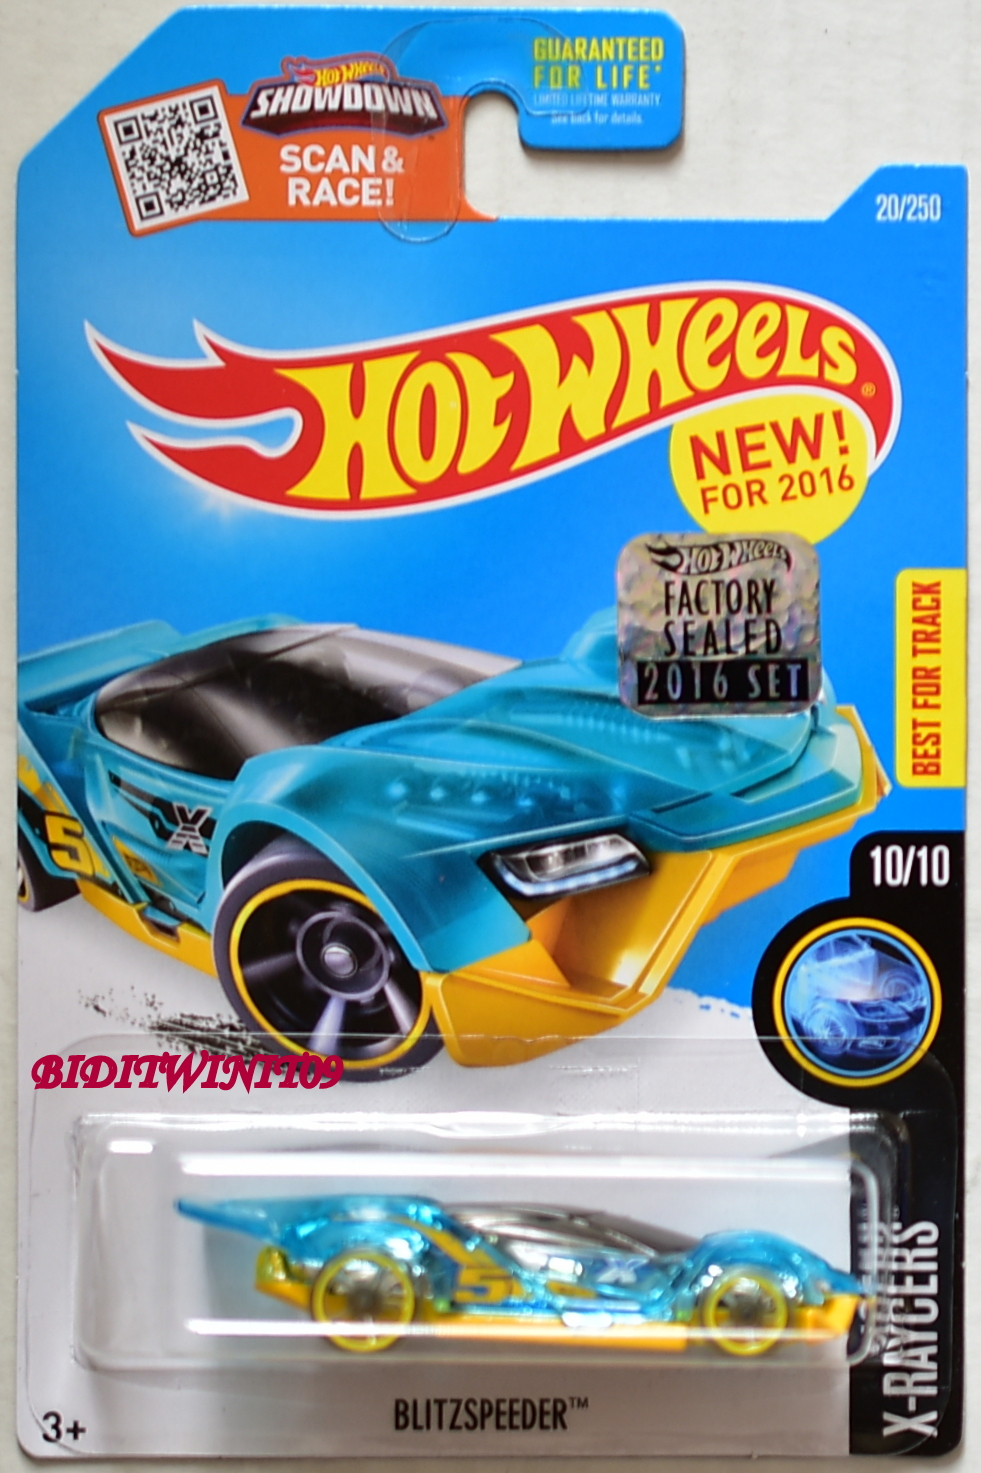 HOT WHEELS 2016 X-RAYCERS BLITZSPEEDER BLUE FACTORY SEALED